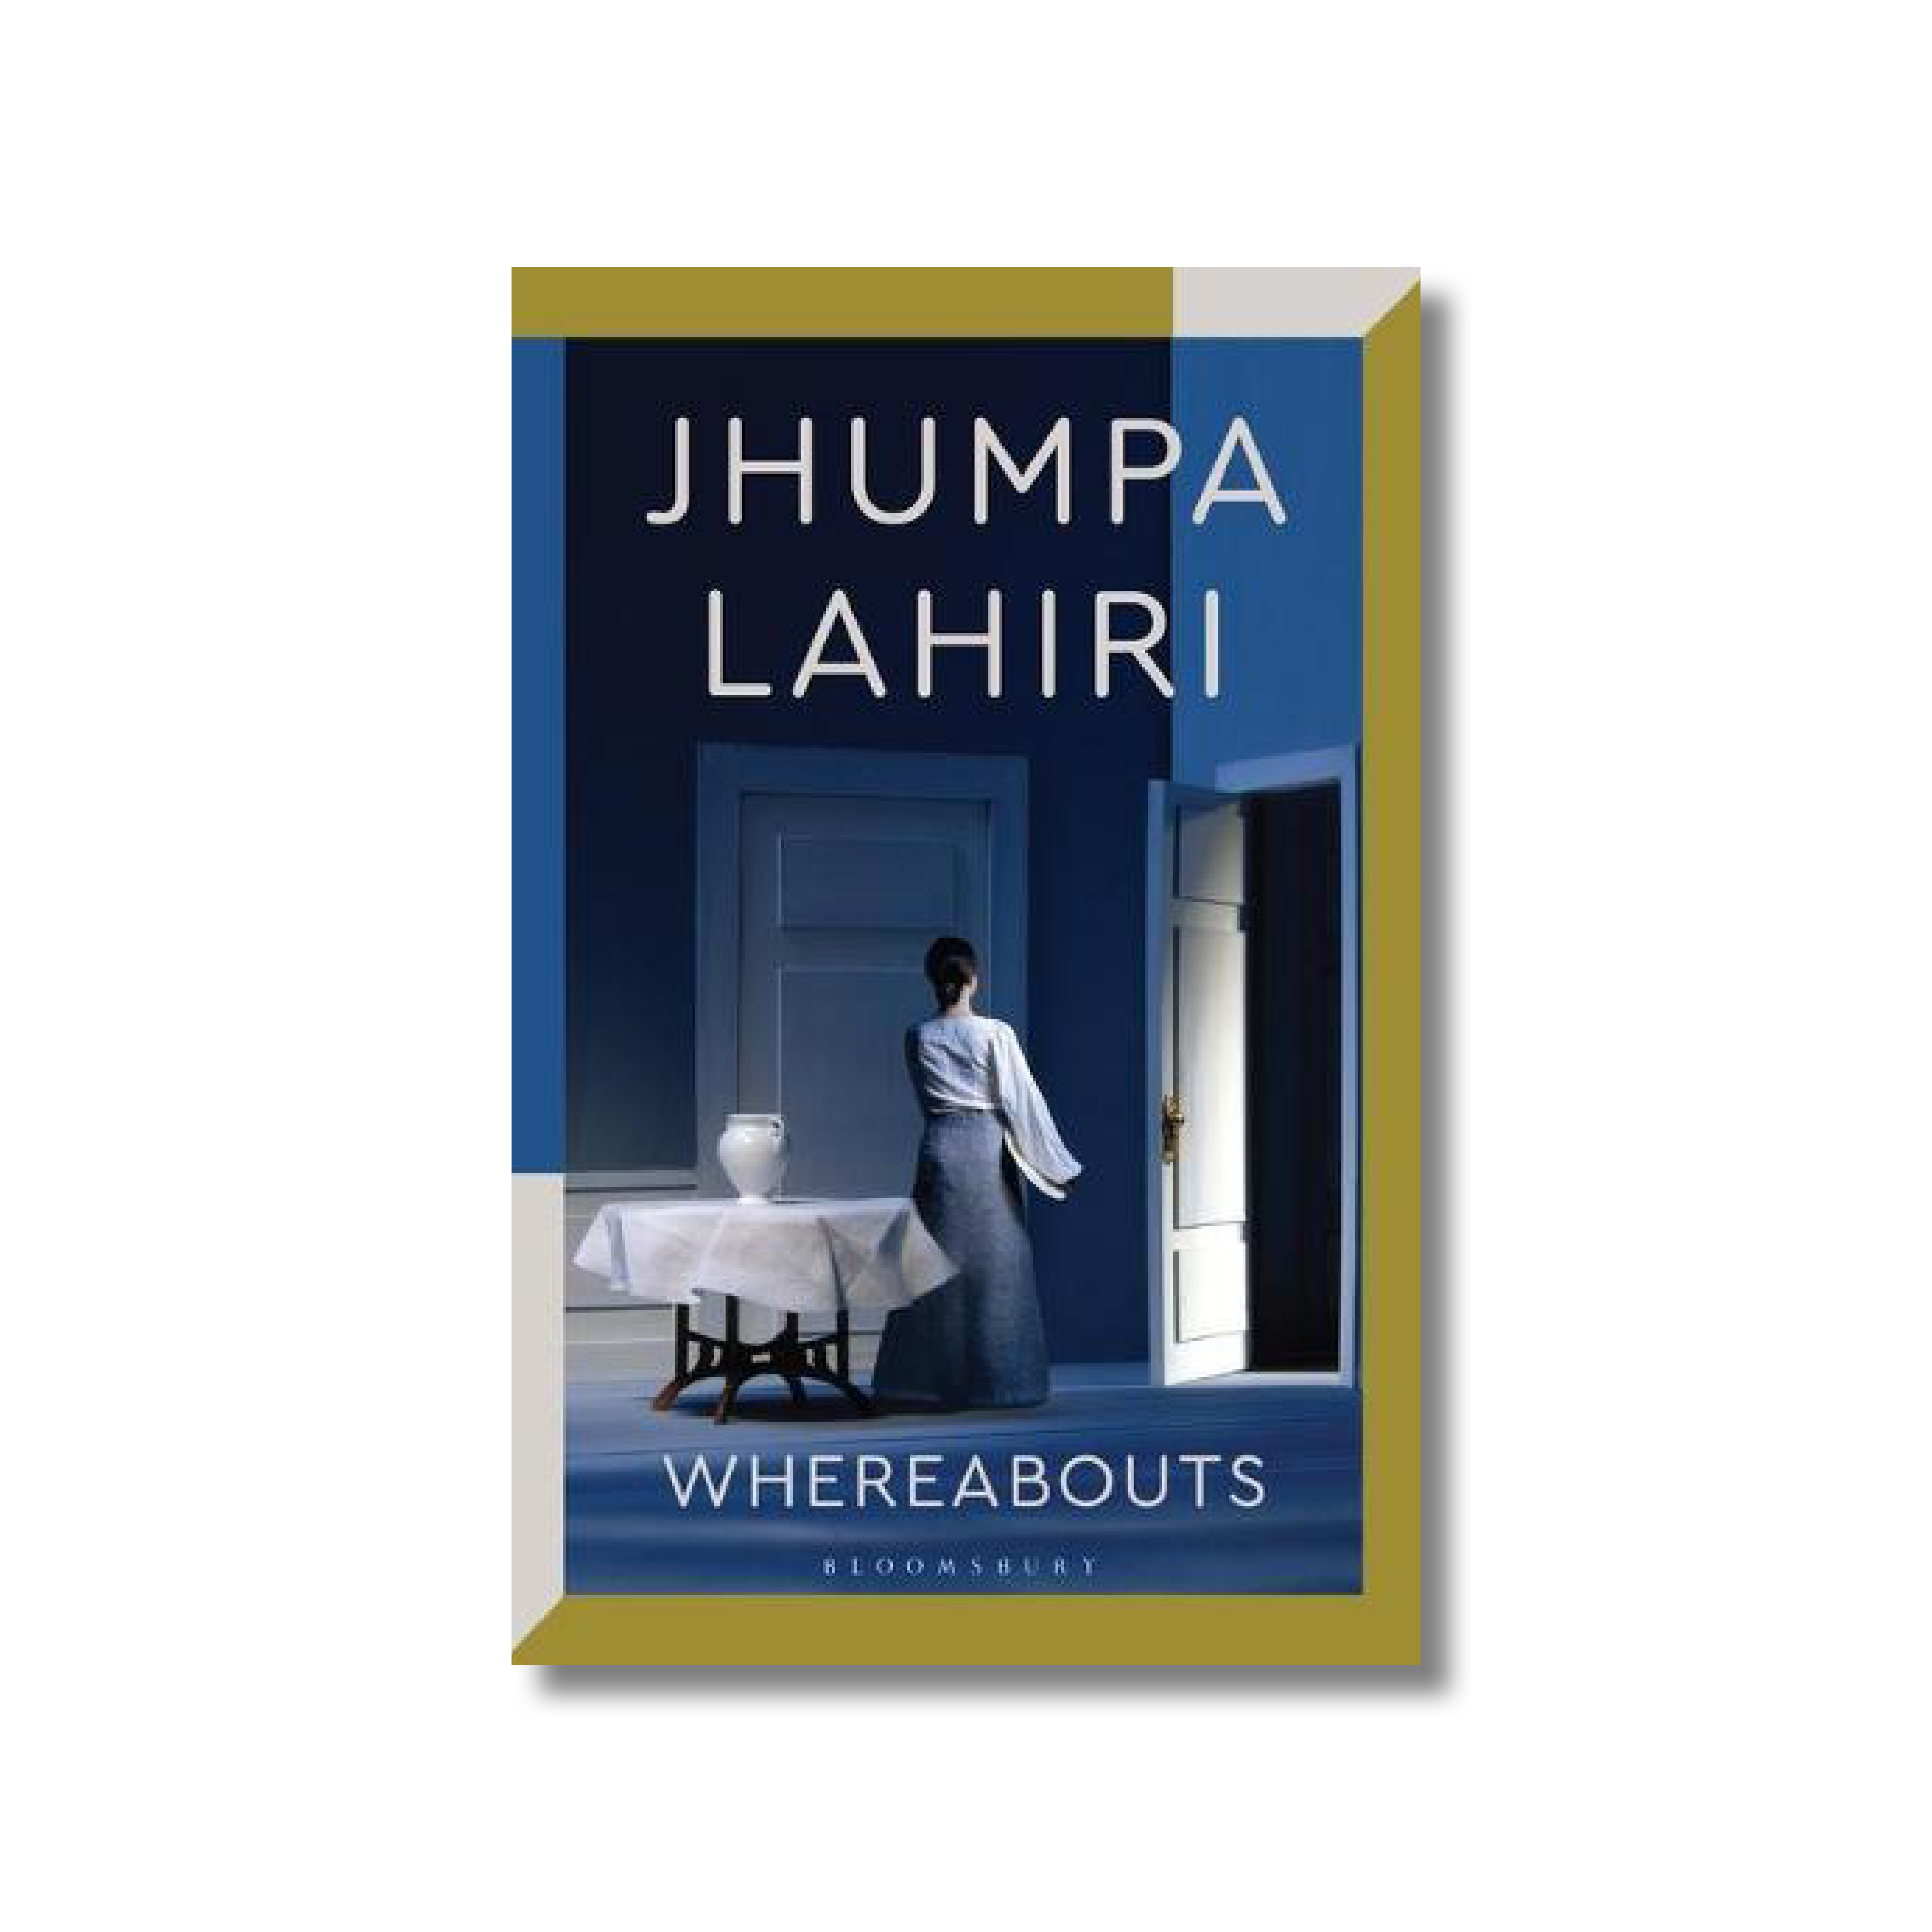 Front cover of Jhumpa Lahiri's 'Whereabouts' on a white background. There is a tableau of an empty room with a woman walking towards a large, white door in the background. The colour palette in the image is blue and white.